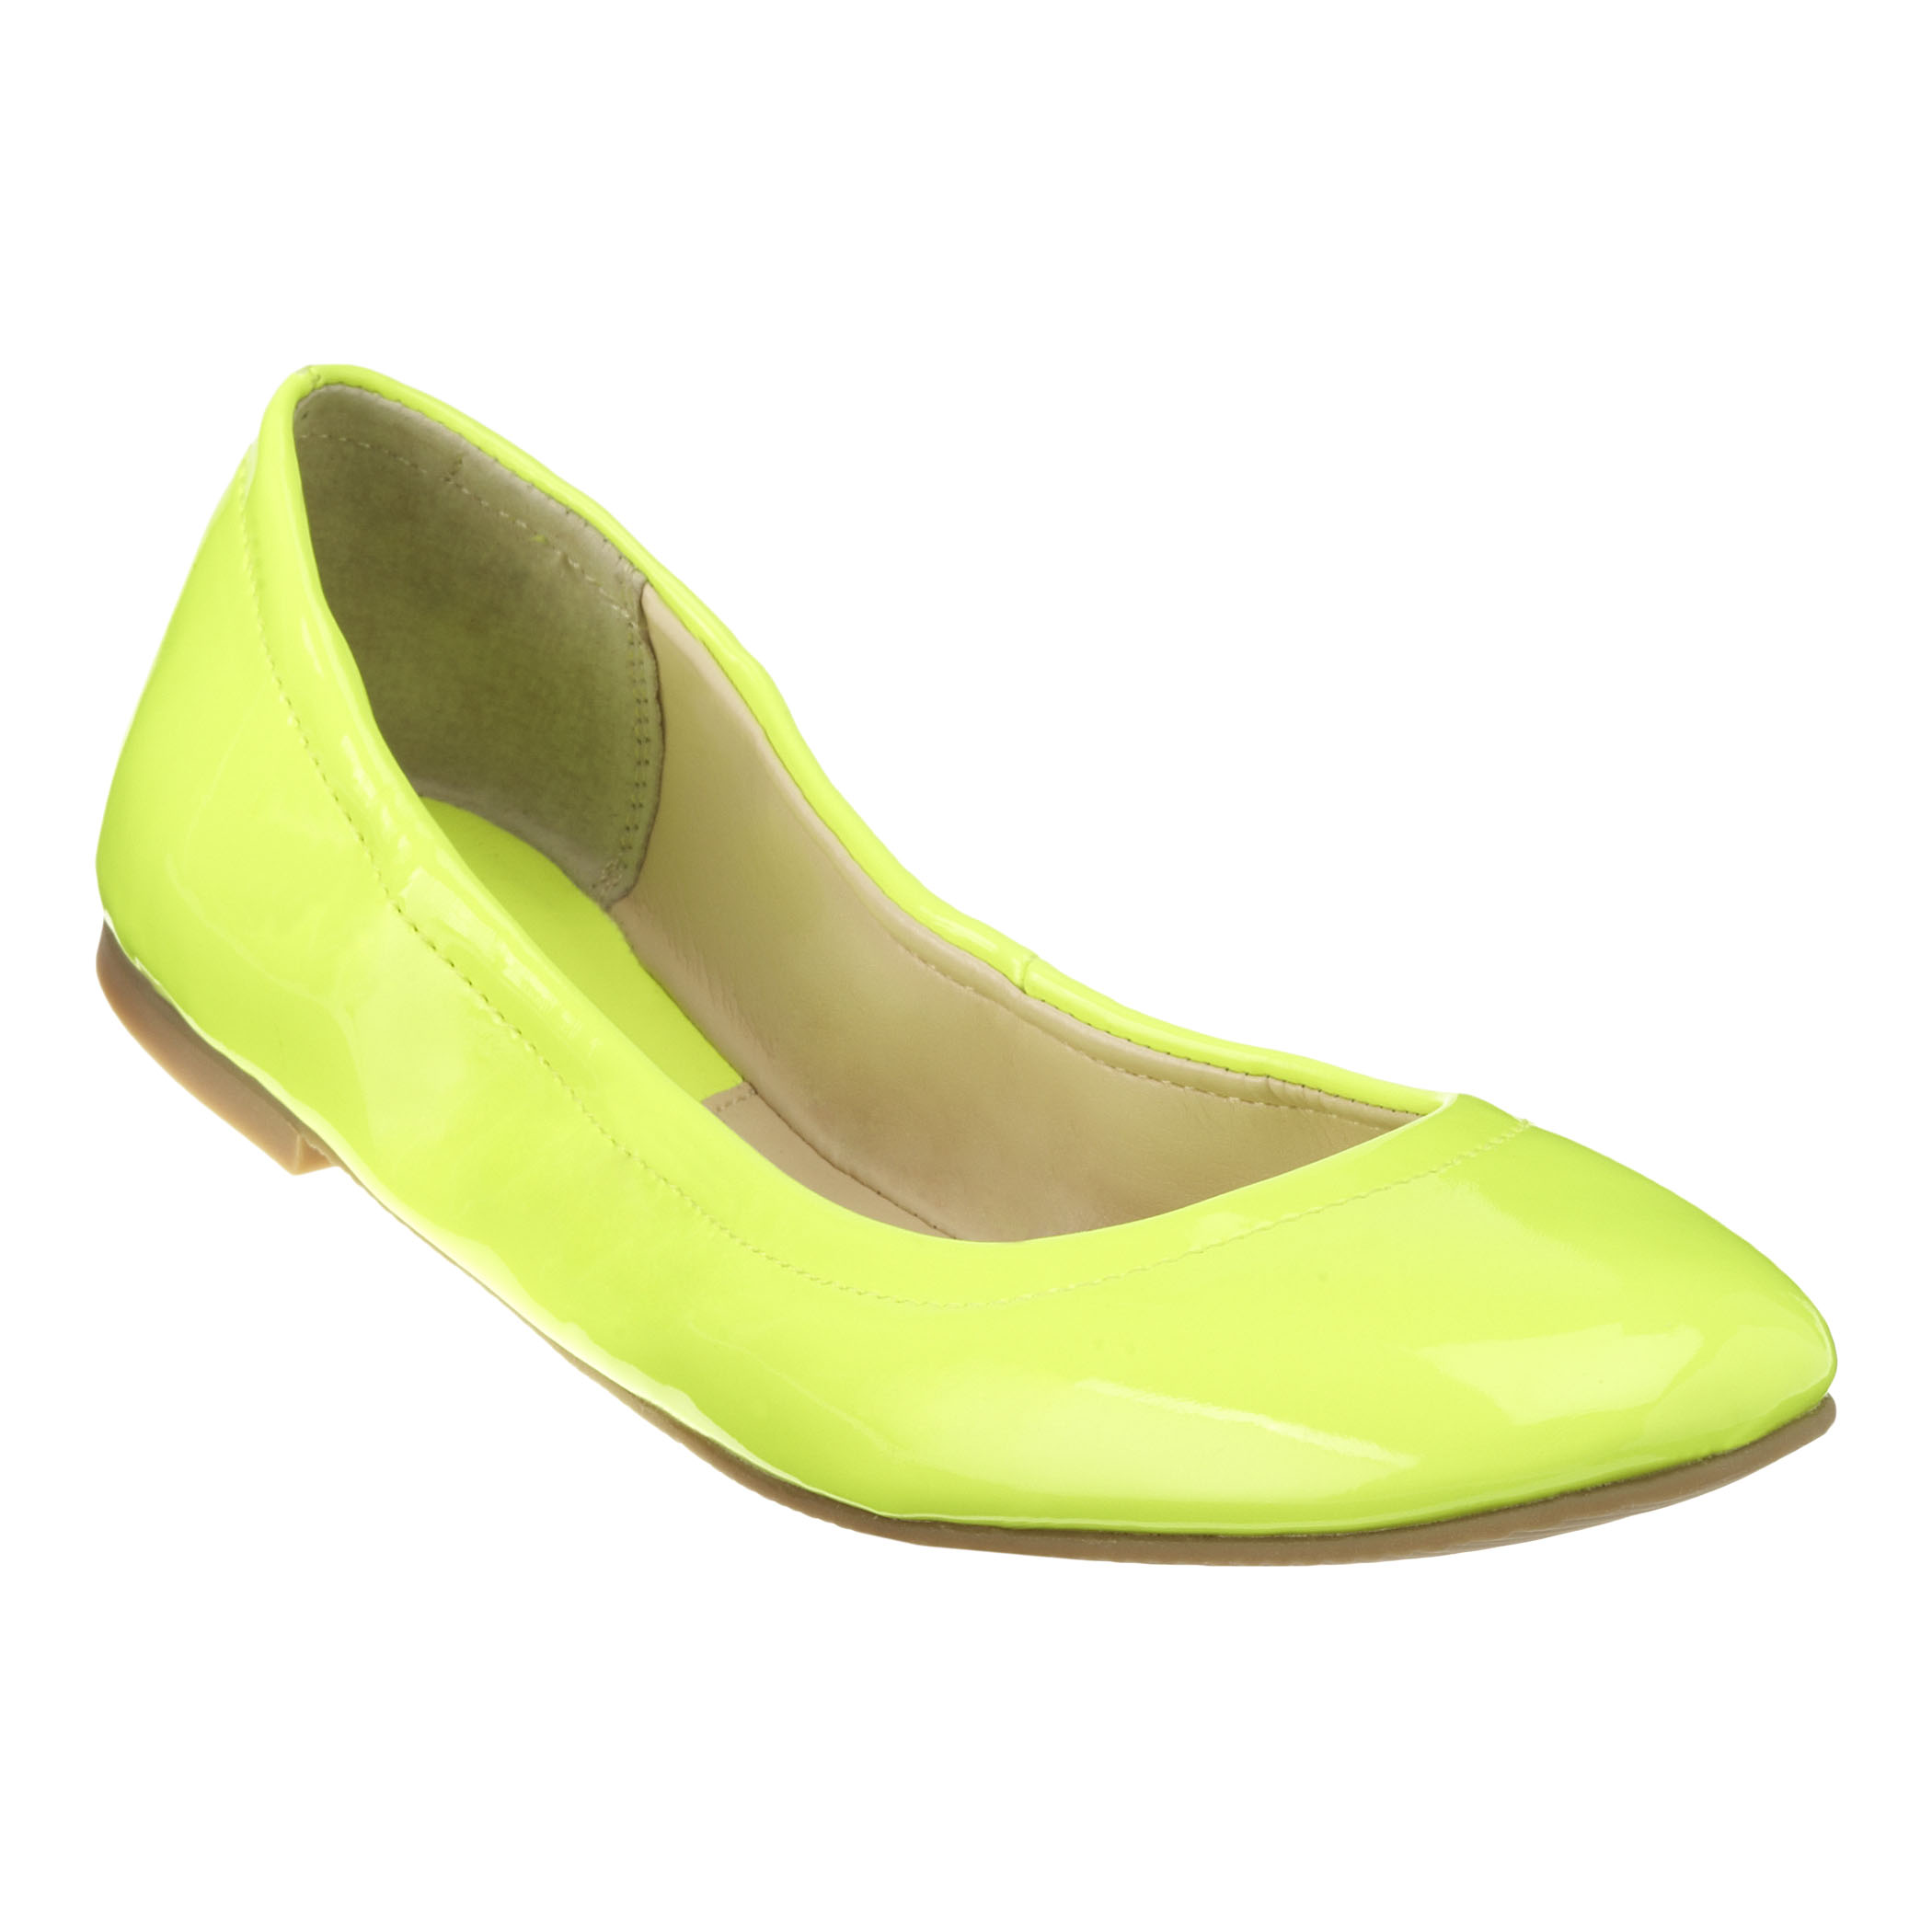 Ballet Flats Shoes & Clogs Boots Loosh Luxe Collection Mens. All New In Sandals Flip-Flops Sneakers Shoes & Clogs THE BALLET FLAT. MADE COMFORTABLE. AVAILABLE NOW Womens. Categories. All Women's All New In Boots & Ankle Boots Sneakers Sandals Shoes Loafers Ballet Flats.